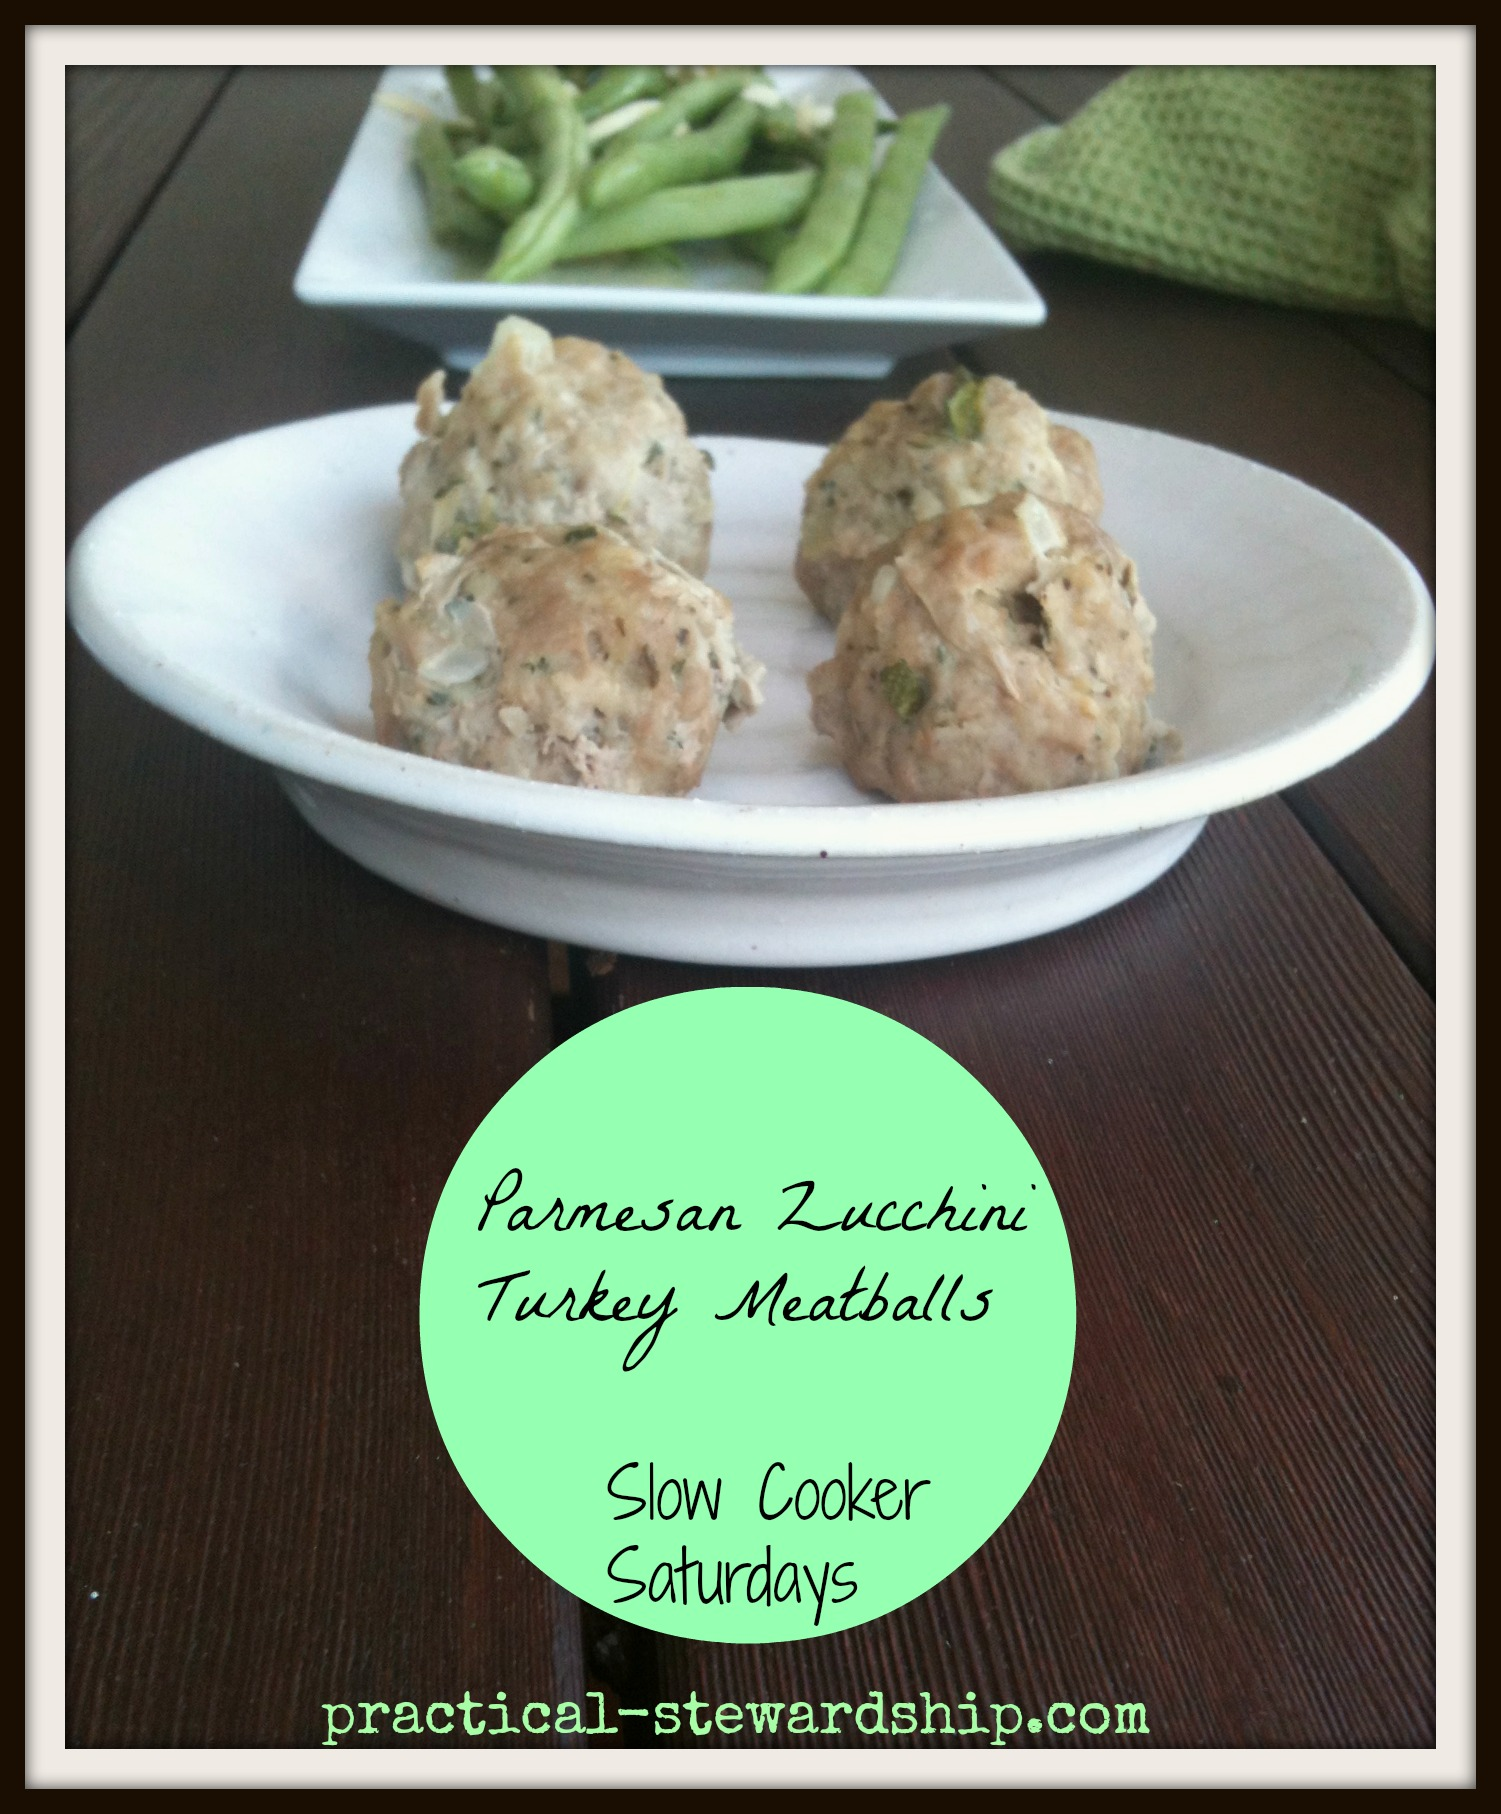 Parmesan Zucchini Turkey Meatballs Crock-pot or Not Recipe